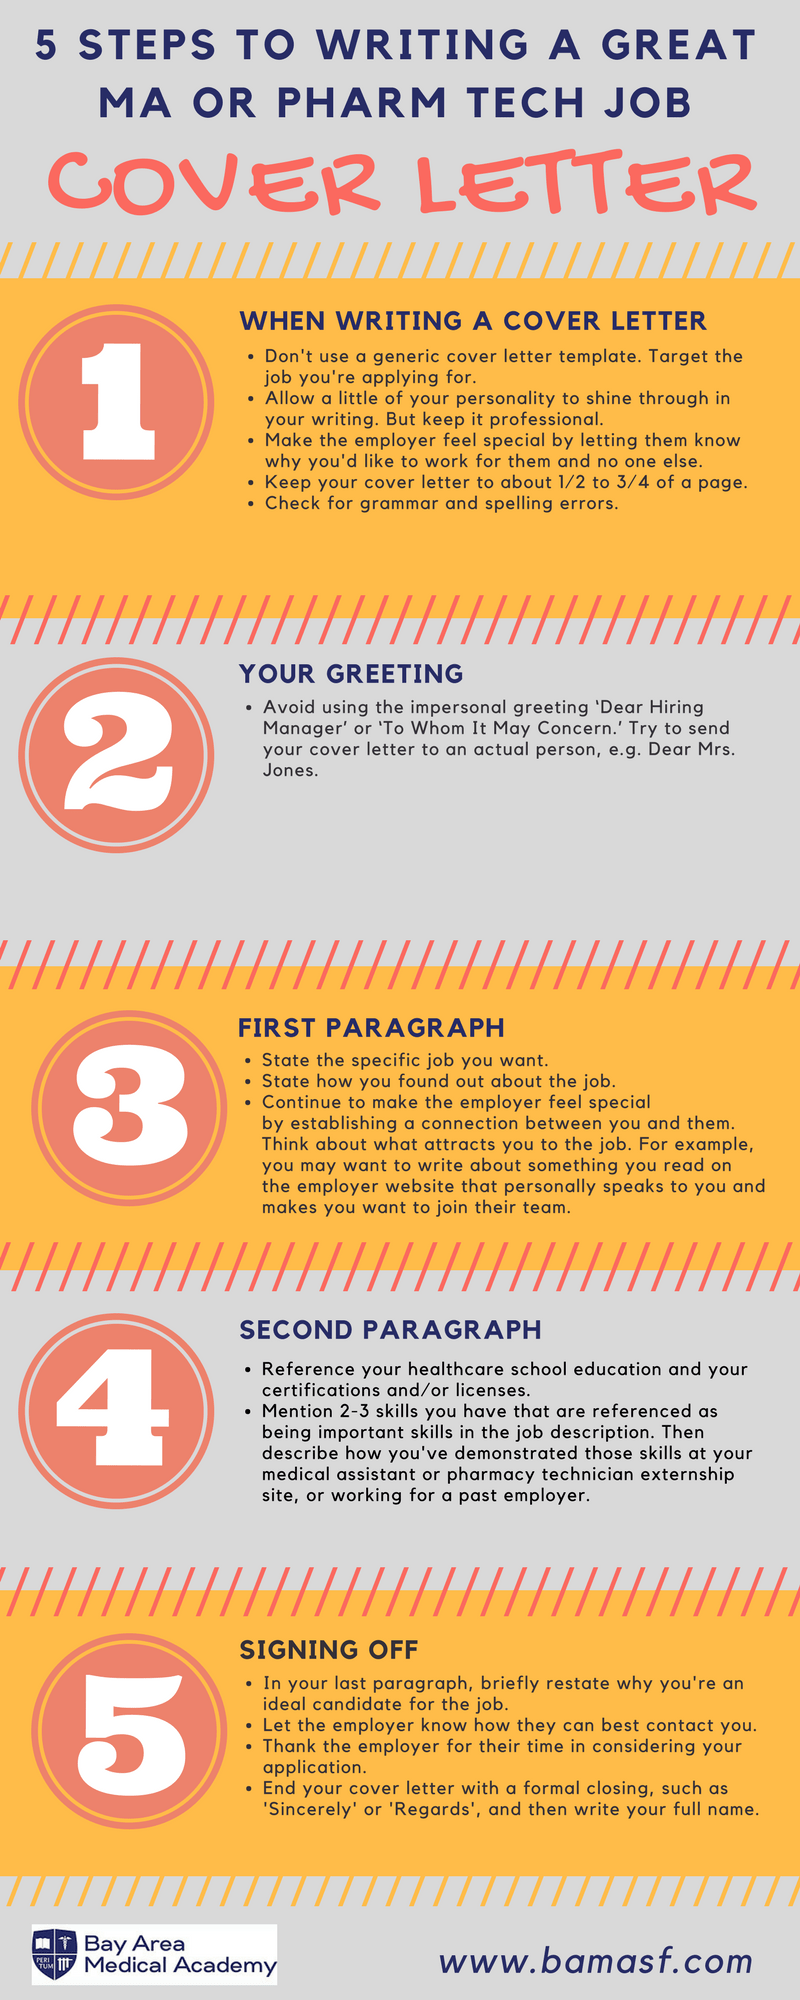 Infographic 5 Steps To Writing A Great Medical Assistant